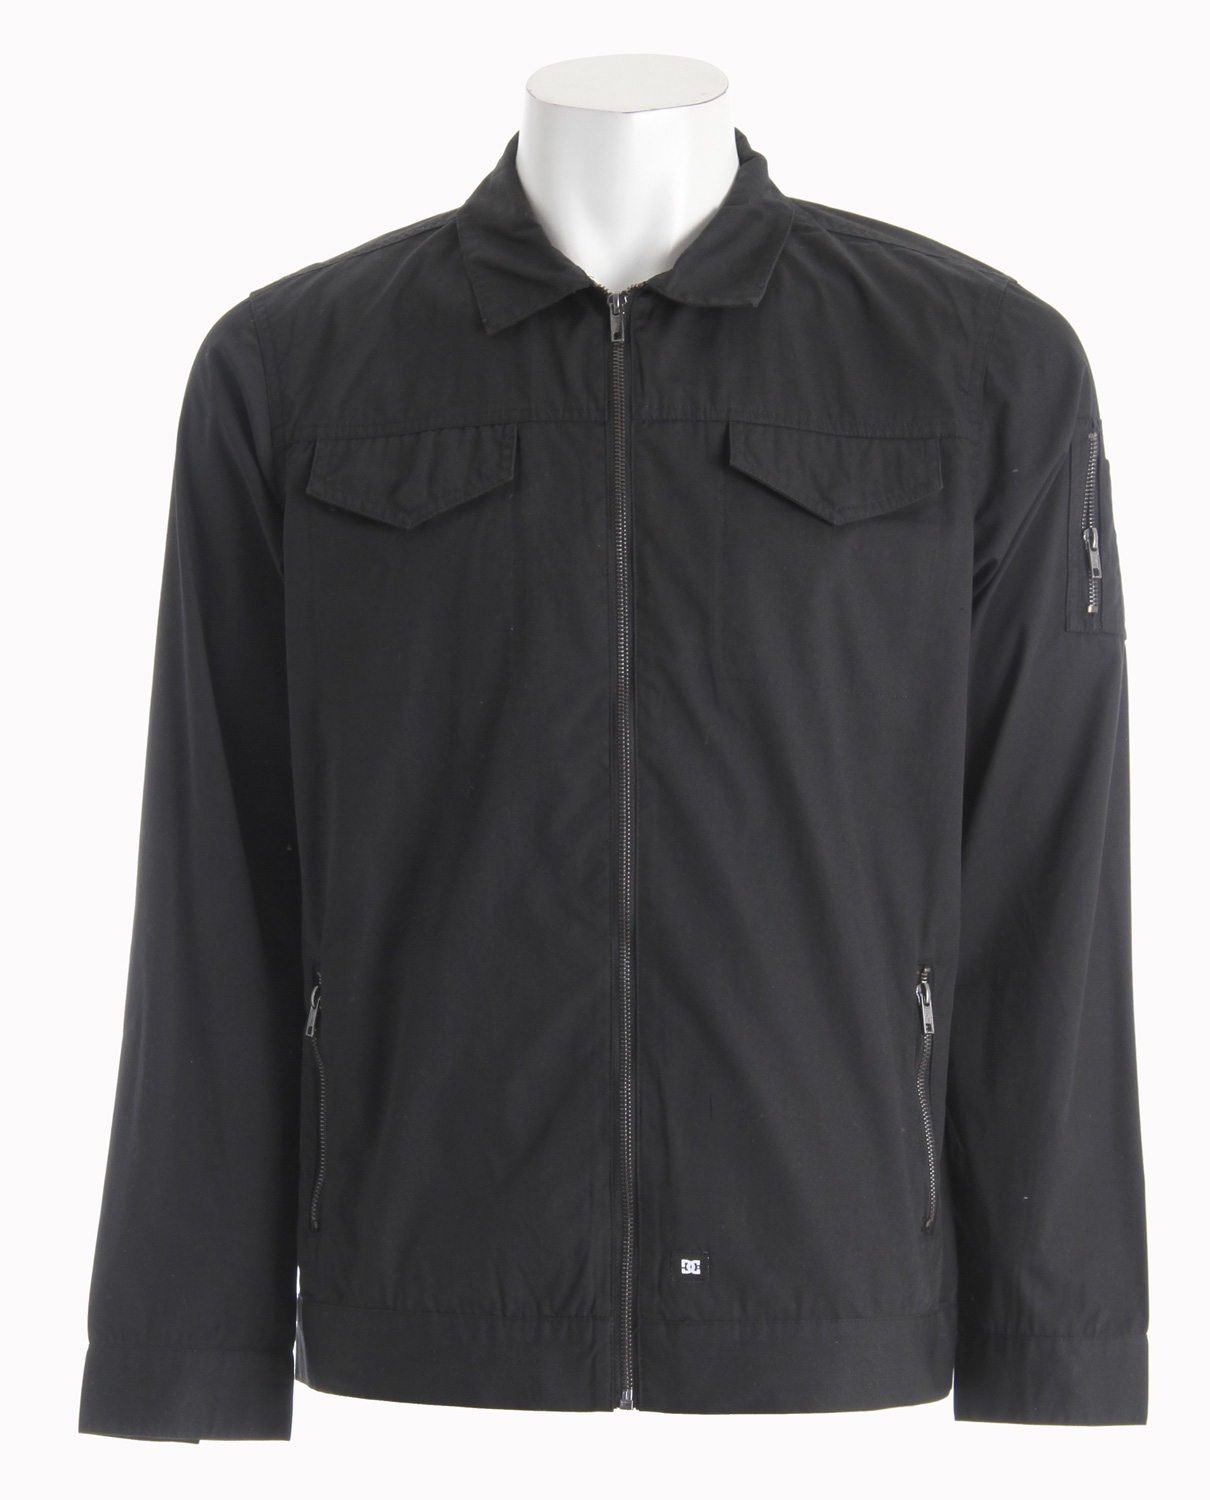 DC Generator Jacket Black - $30.95